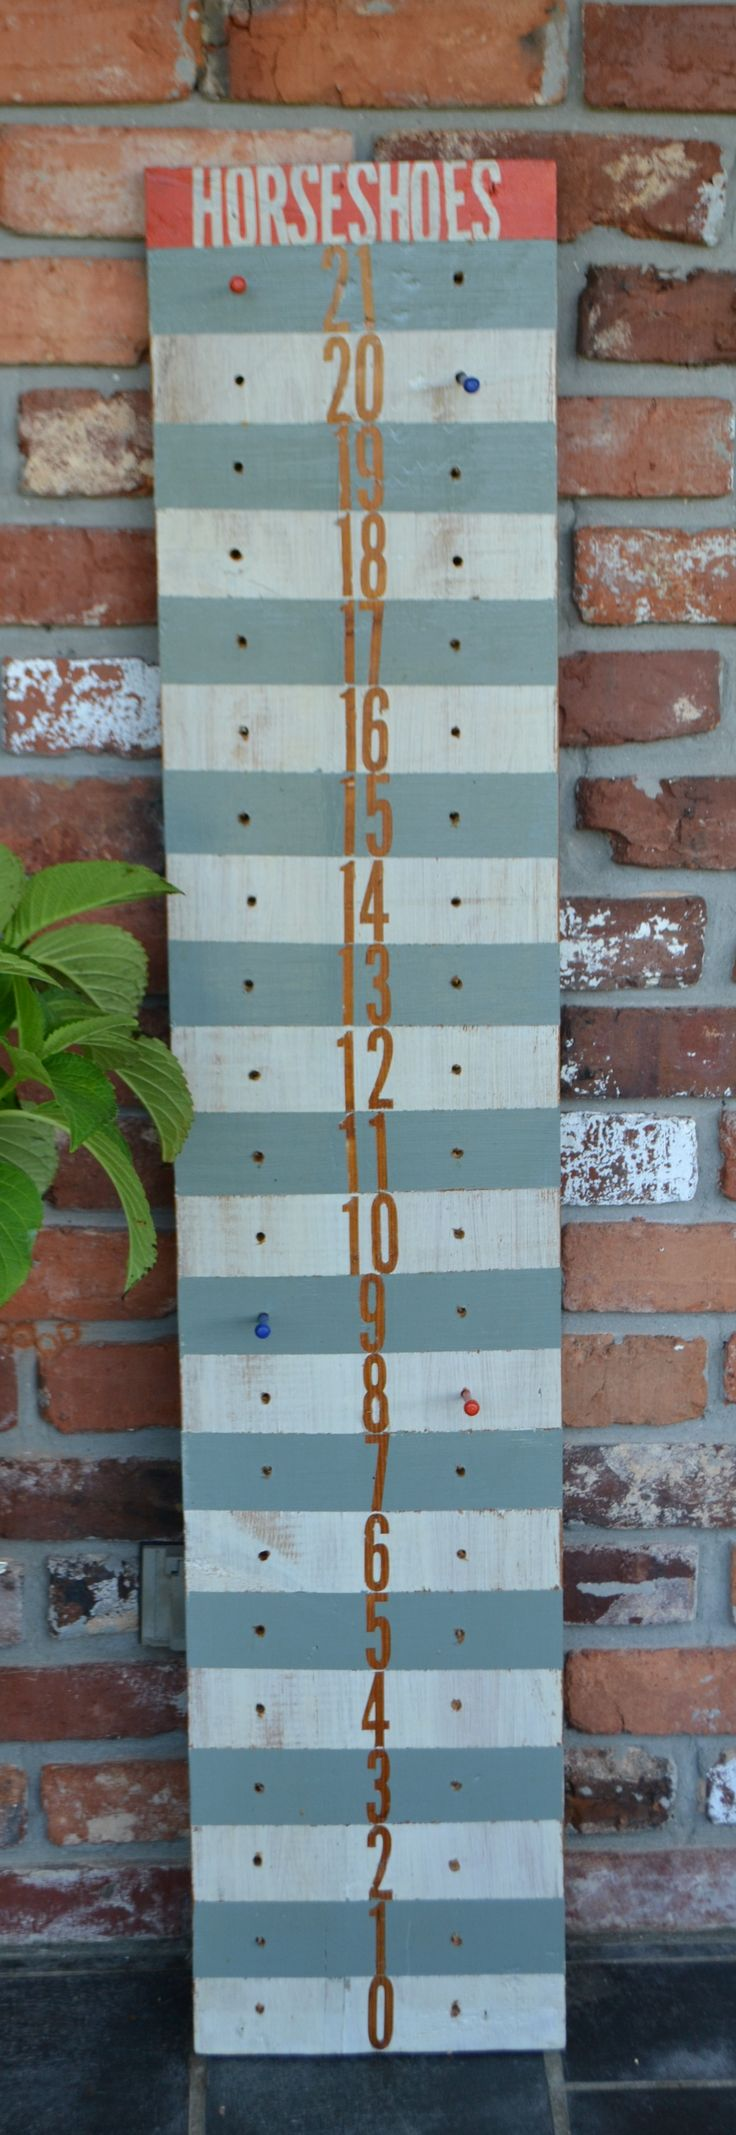 horseshoe scoreboard / gameboard